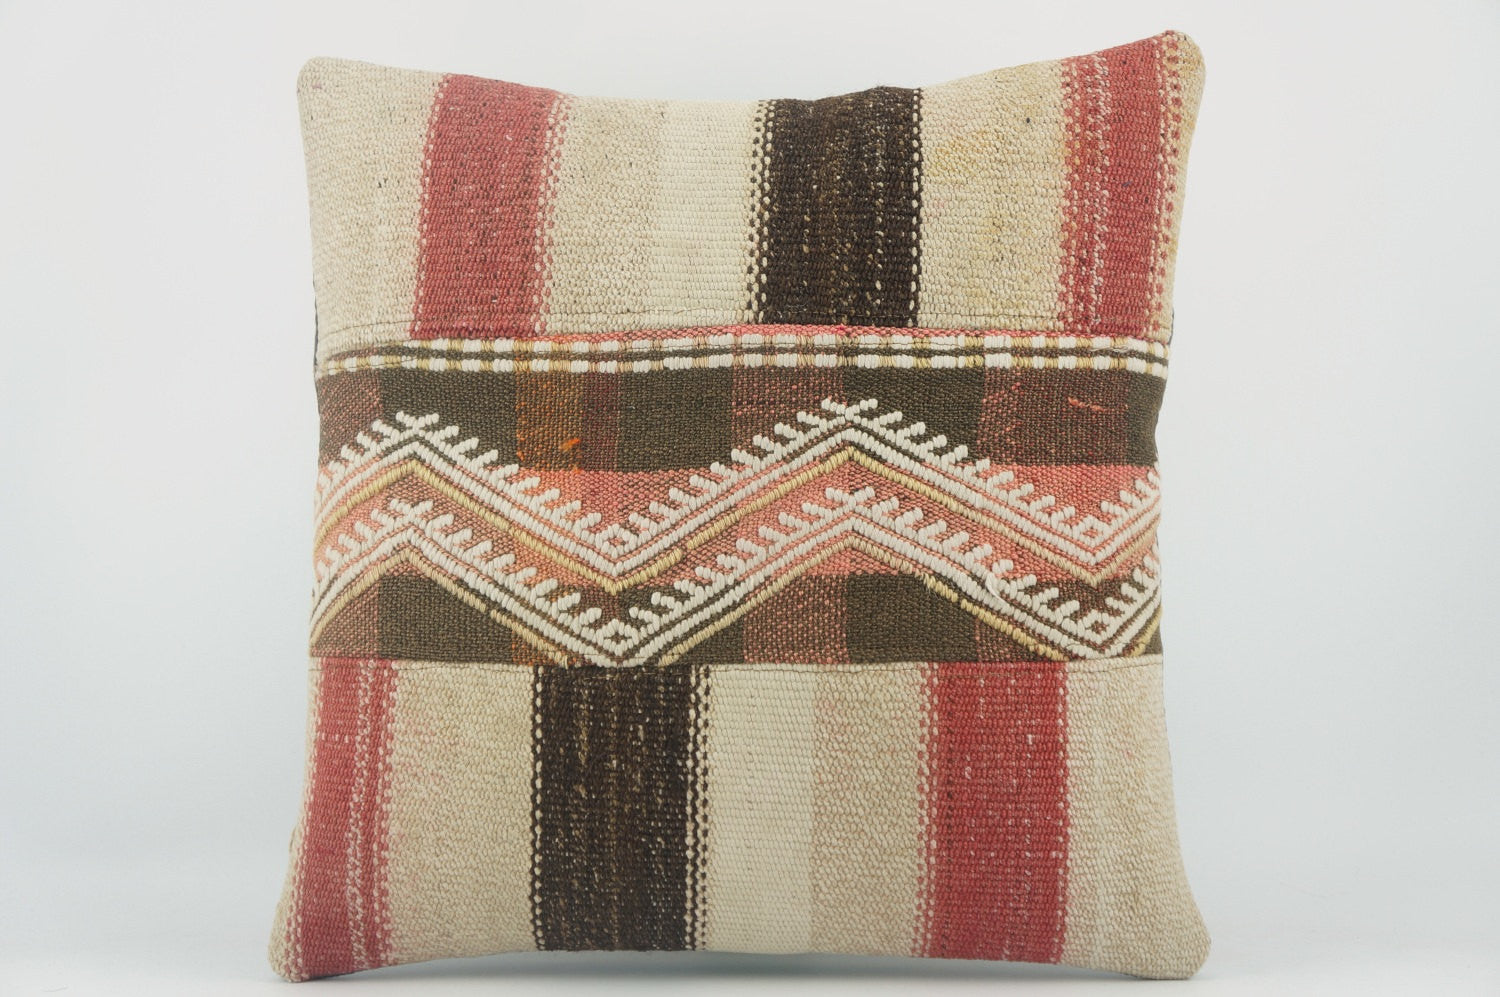 Chevron  Kilim pillow  , Decorative patchwork pillow  1498 - kilimpillowstore  - 1